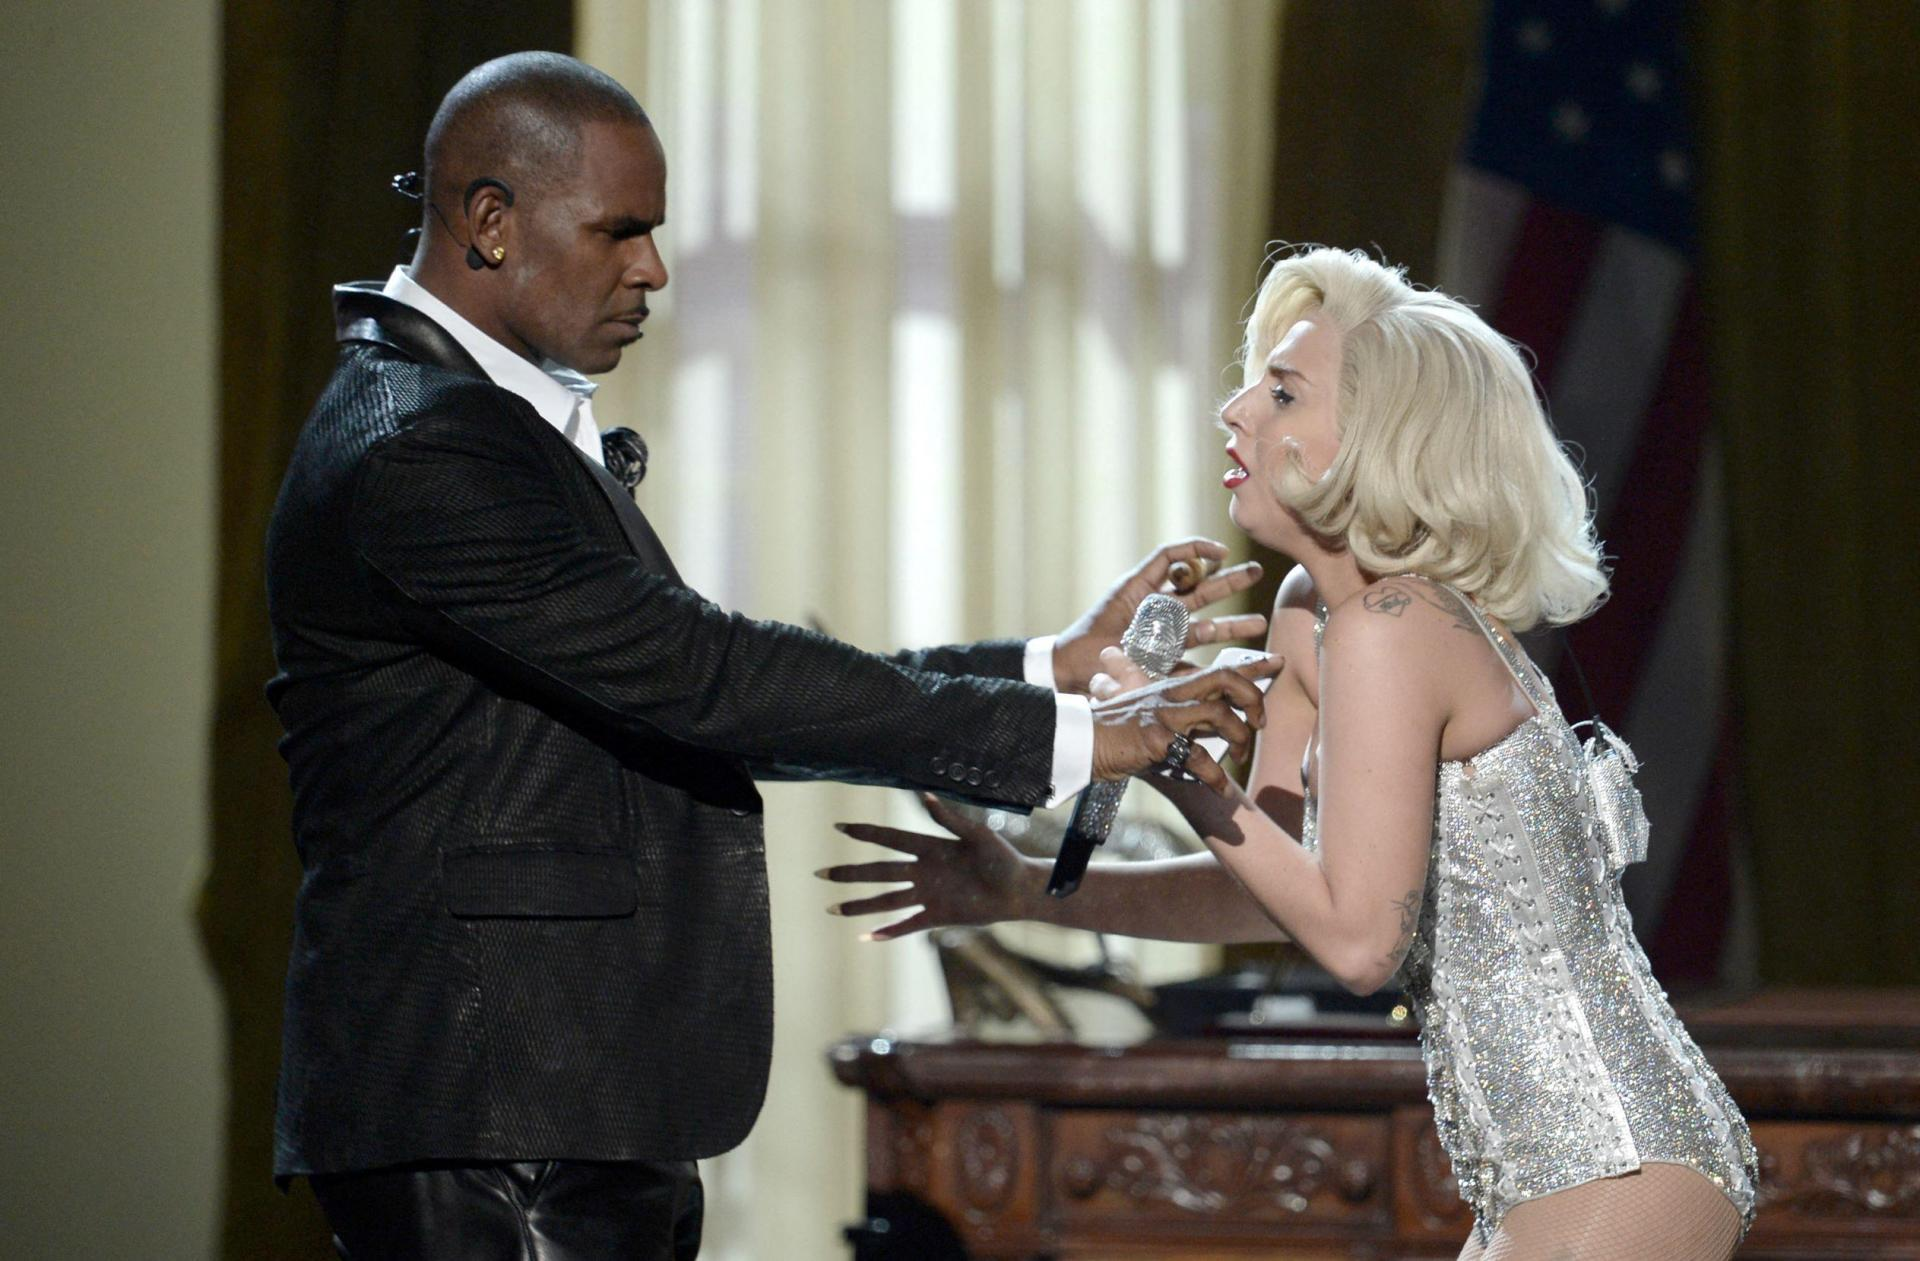 Singers Lady Gaga and R. Kelly perform onstage during the 2013 American Music Awards. Lady Gaga has since apologised for her past collaborations with Kelly. Photo: Kevin Winter/Getty Images North America/Getty Images via AFP